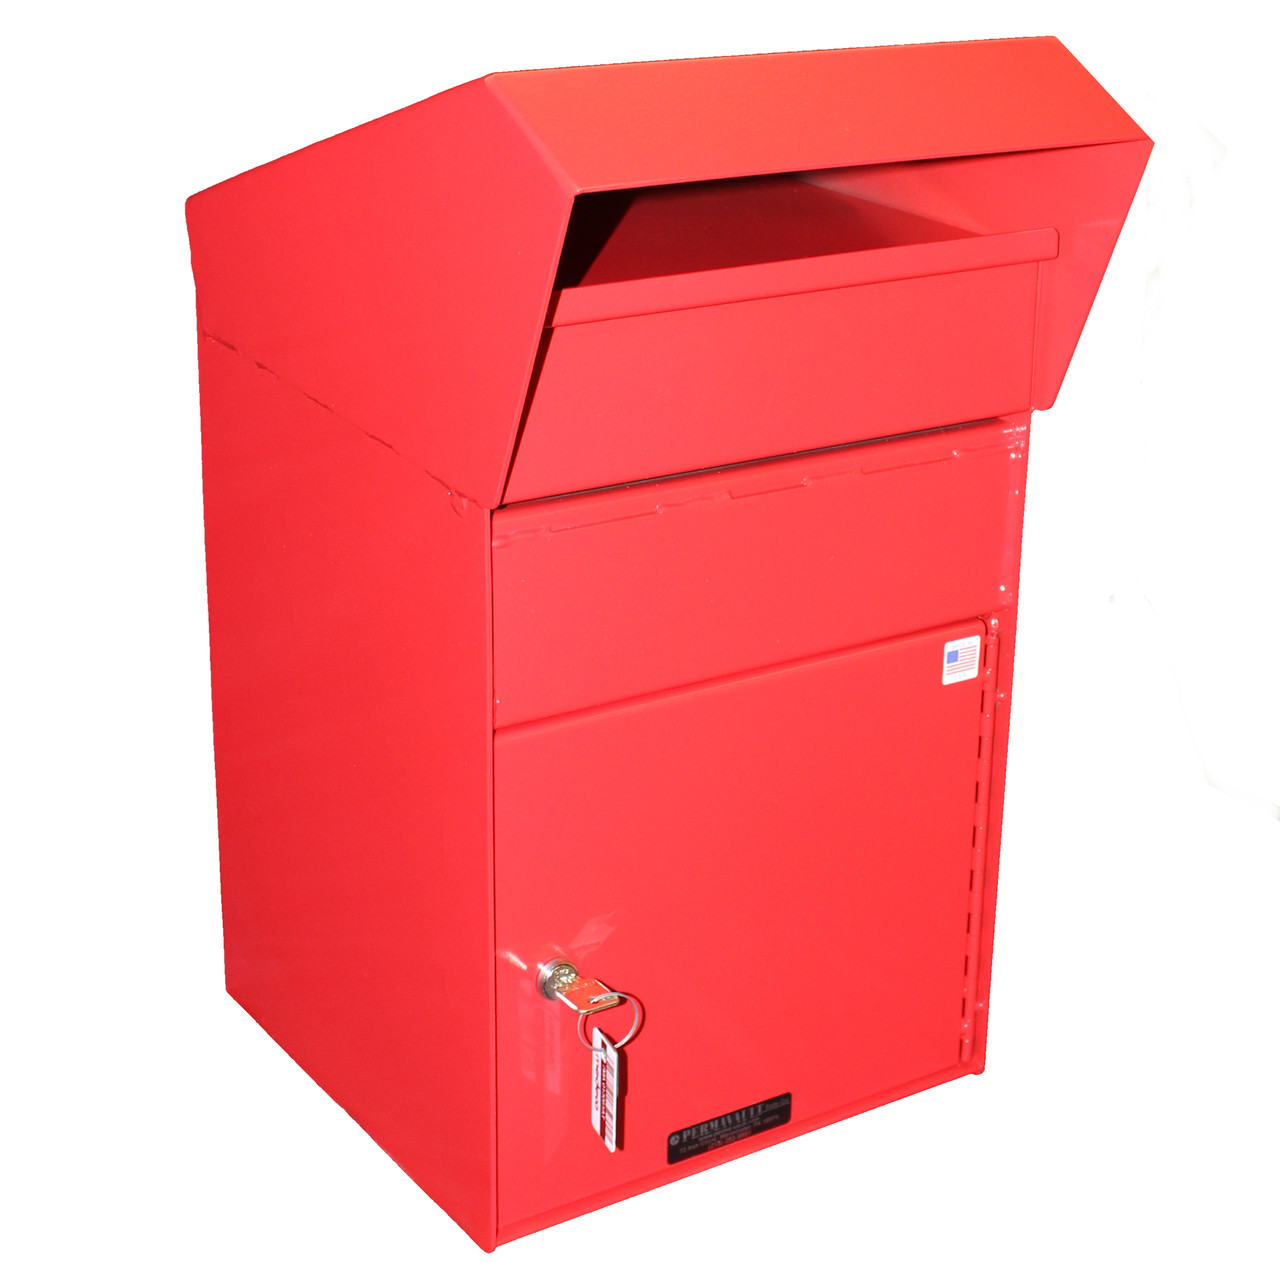 Extra Large Outdoor Secure Payment Drop Box side view